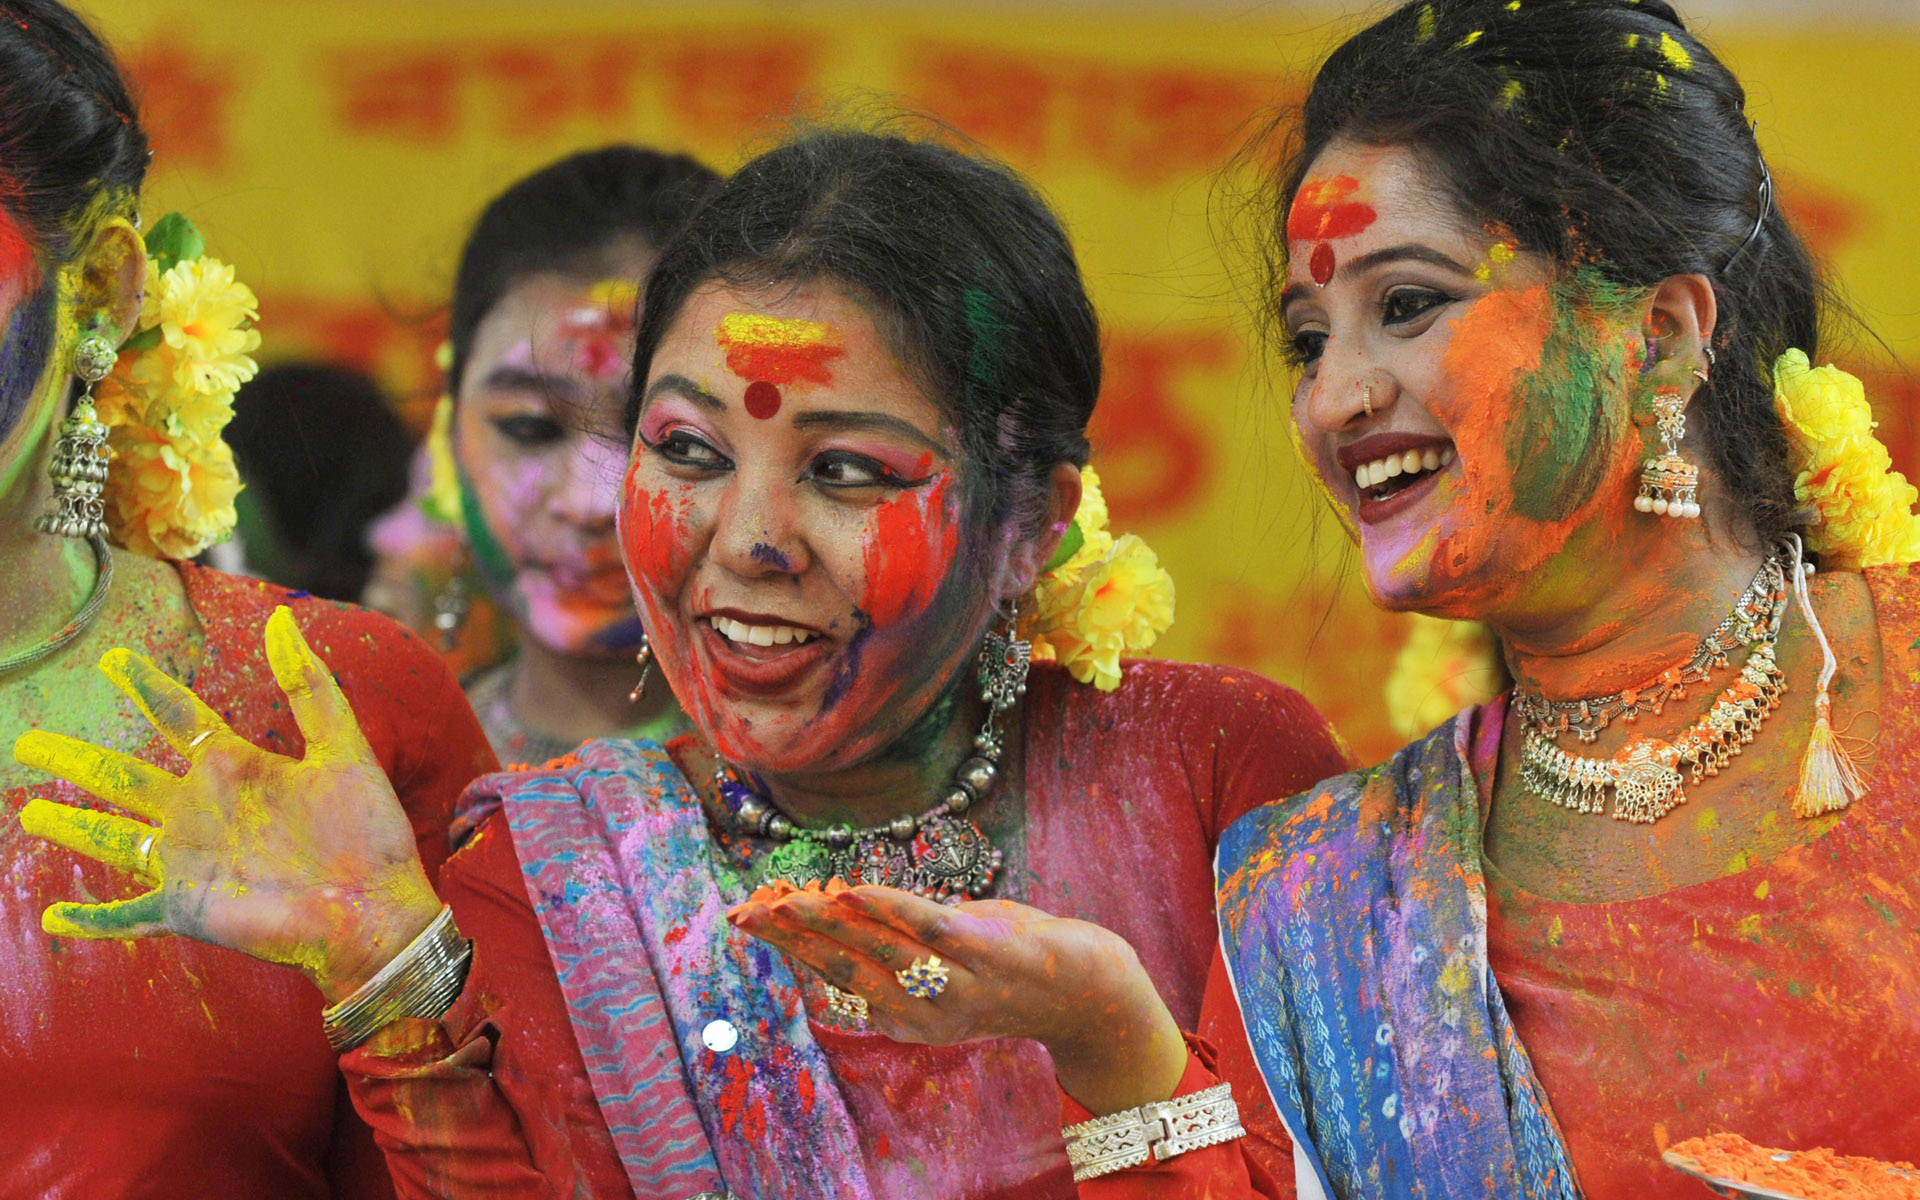 Festival of Colors  Holi Day India Picture  HD Wallpapers for Free